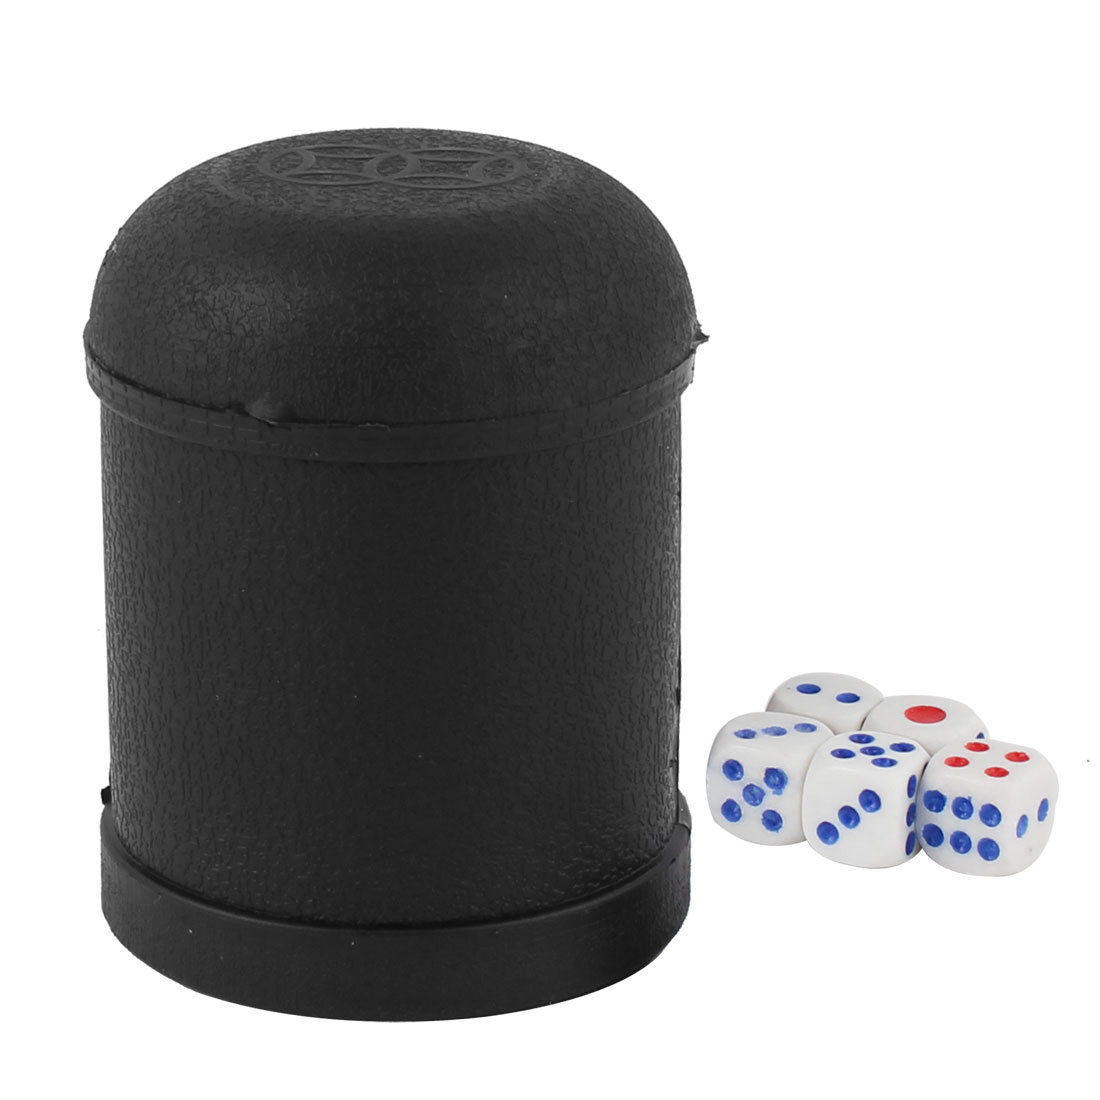 KTV Party Bar Plastic Shaker Guessing Funny Casual Tool Dice Cup w 5 Dices Black